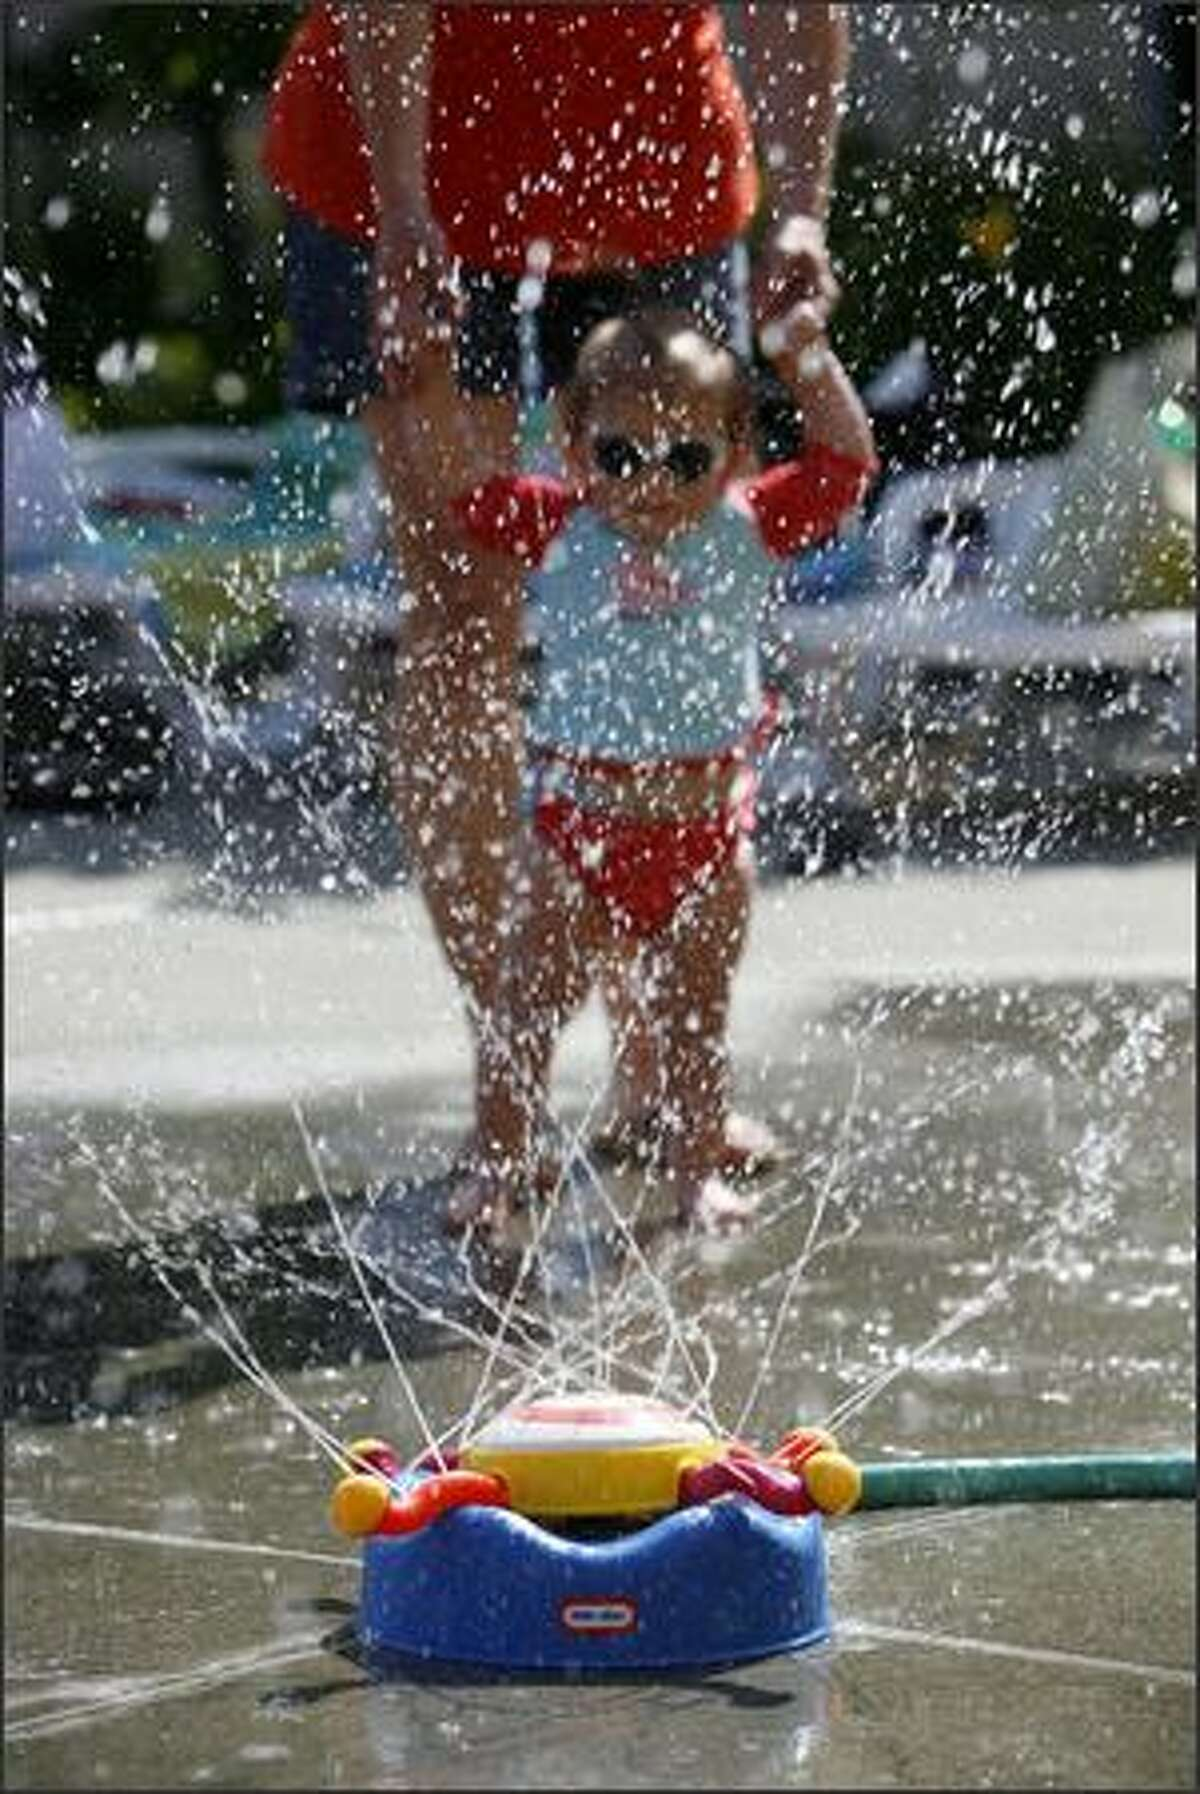 Raven Willis, 1, watches a sprinkler cool children playing at the Mounger Pool in Magnolia on Wednesday.